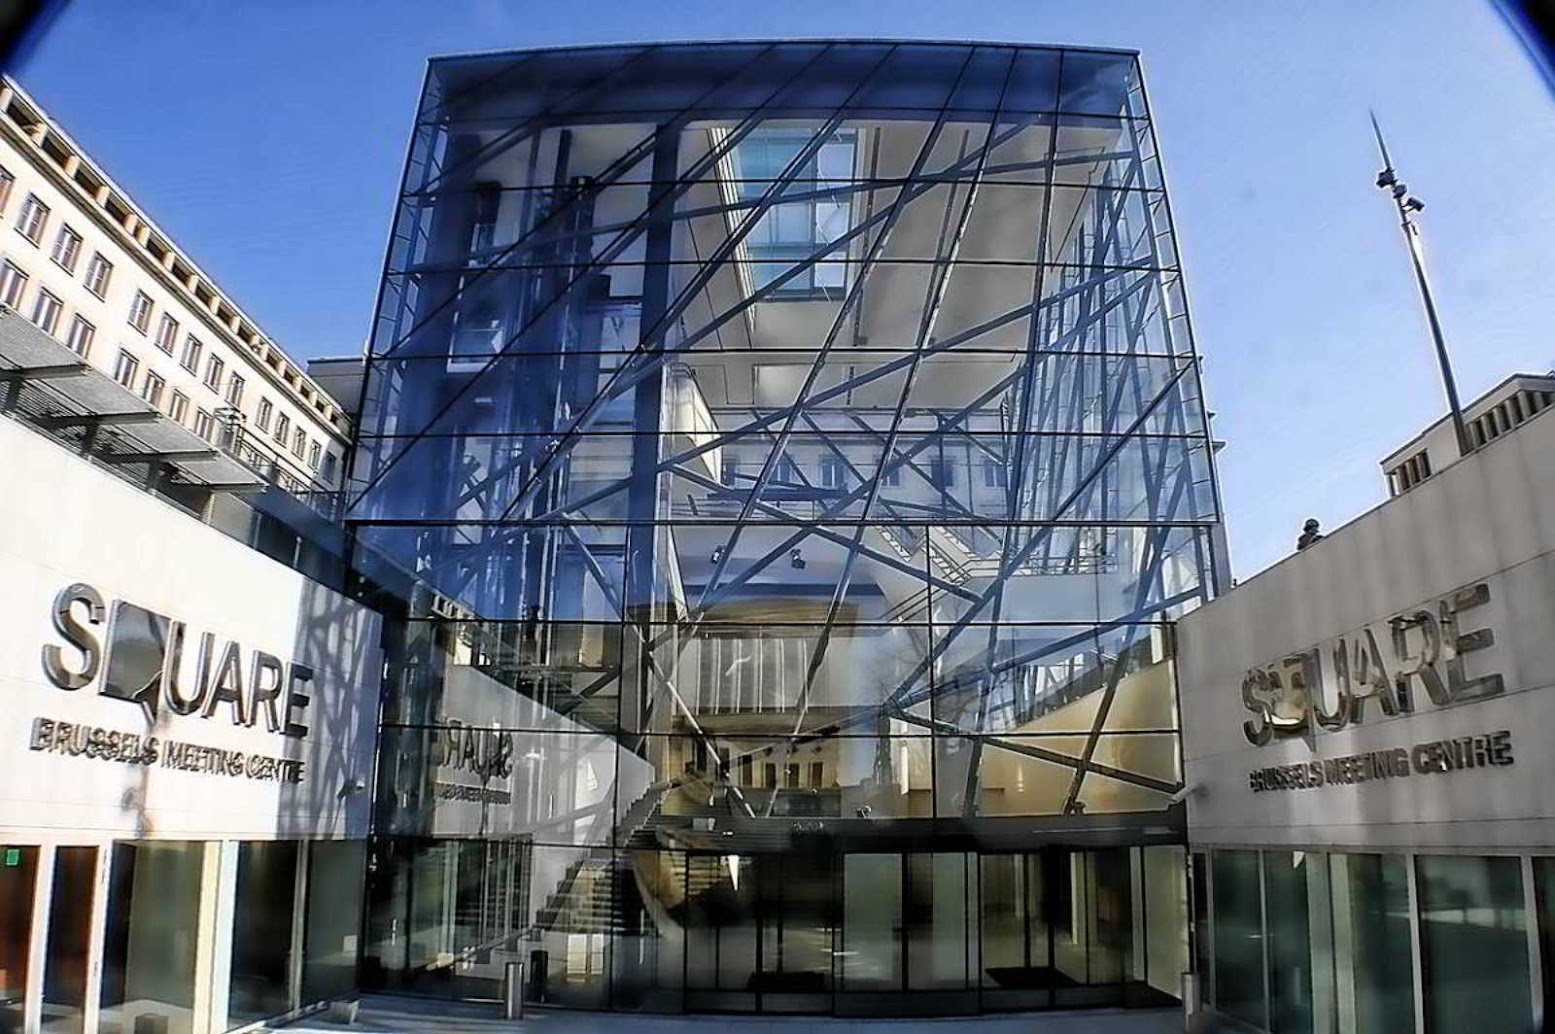 Città di Bruxelles, Belgio: [SQUARE BRUSSELS MEETING CENTER BY A2RC ARCHITECTS]